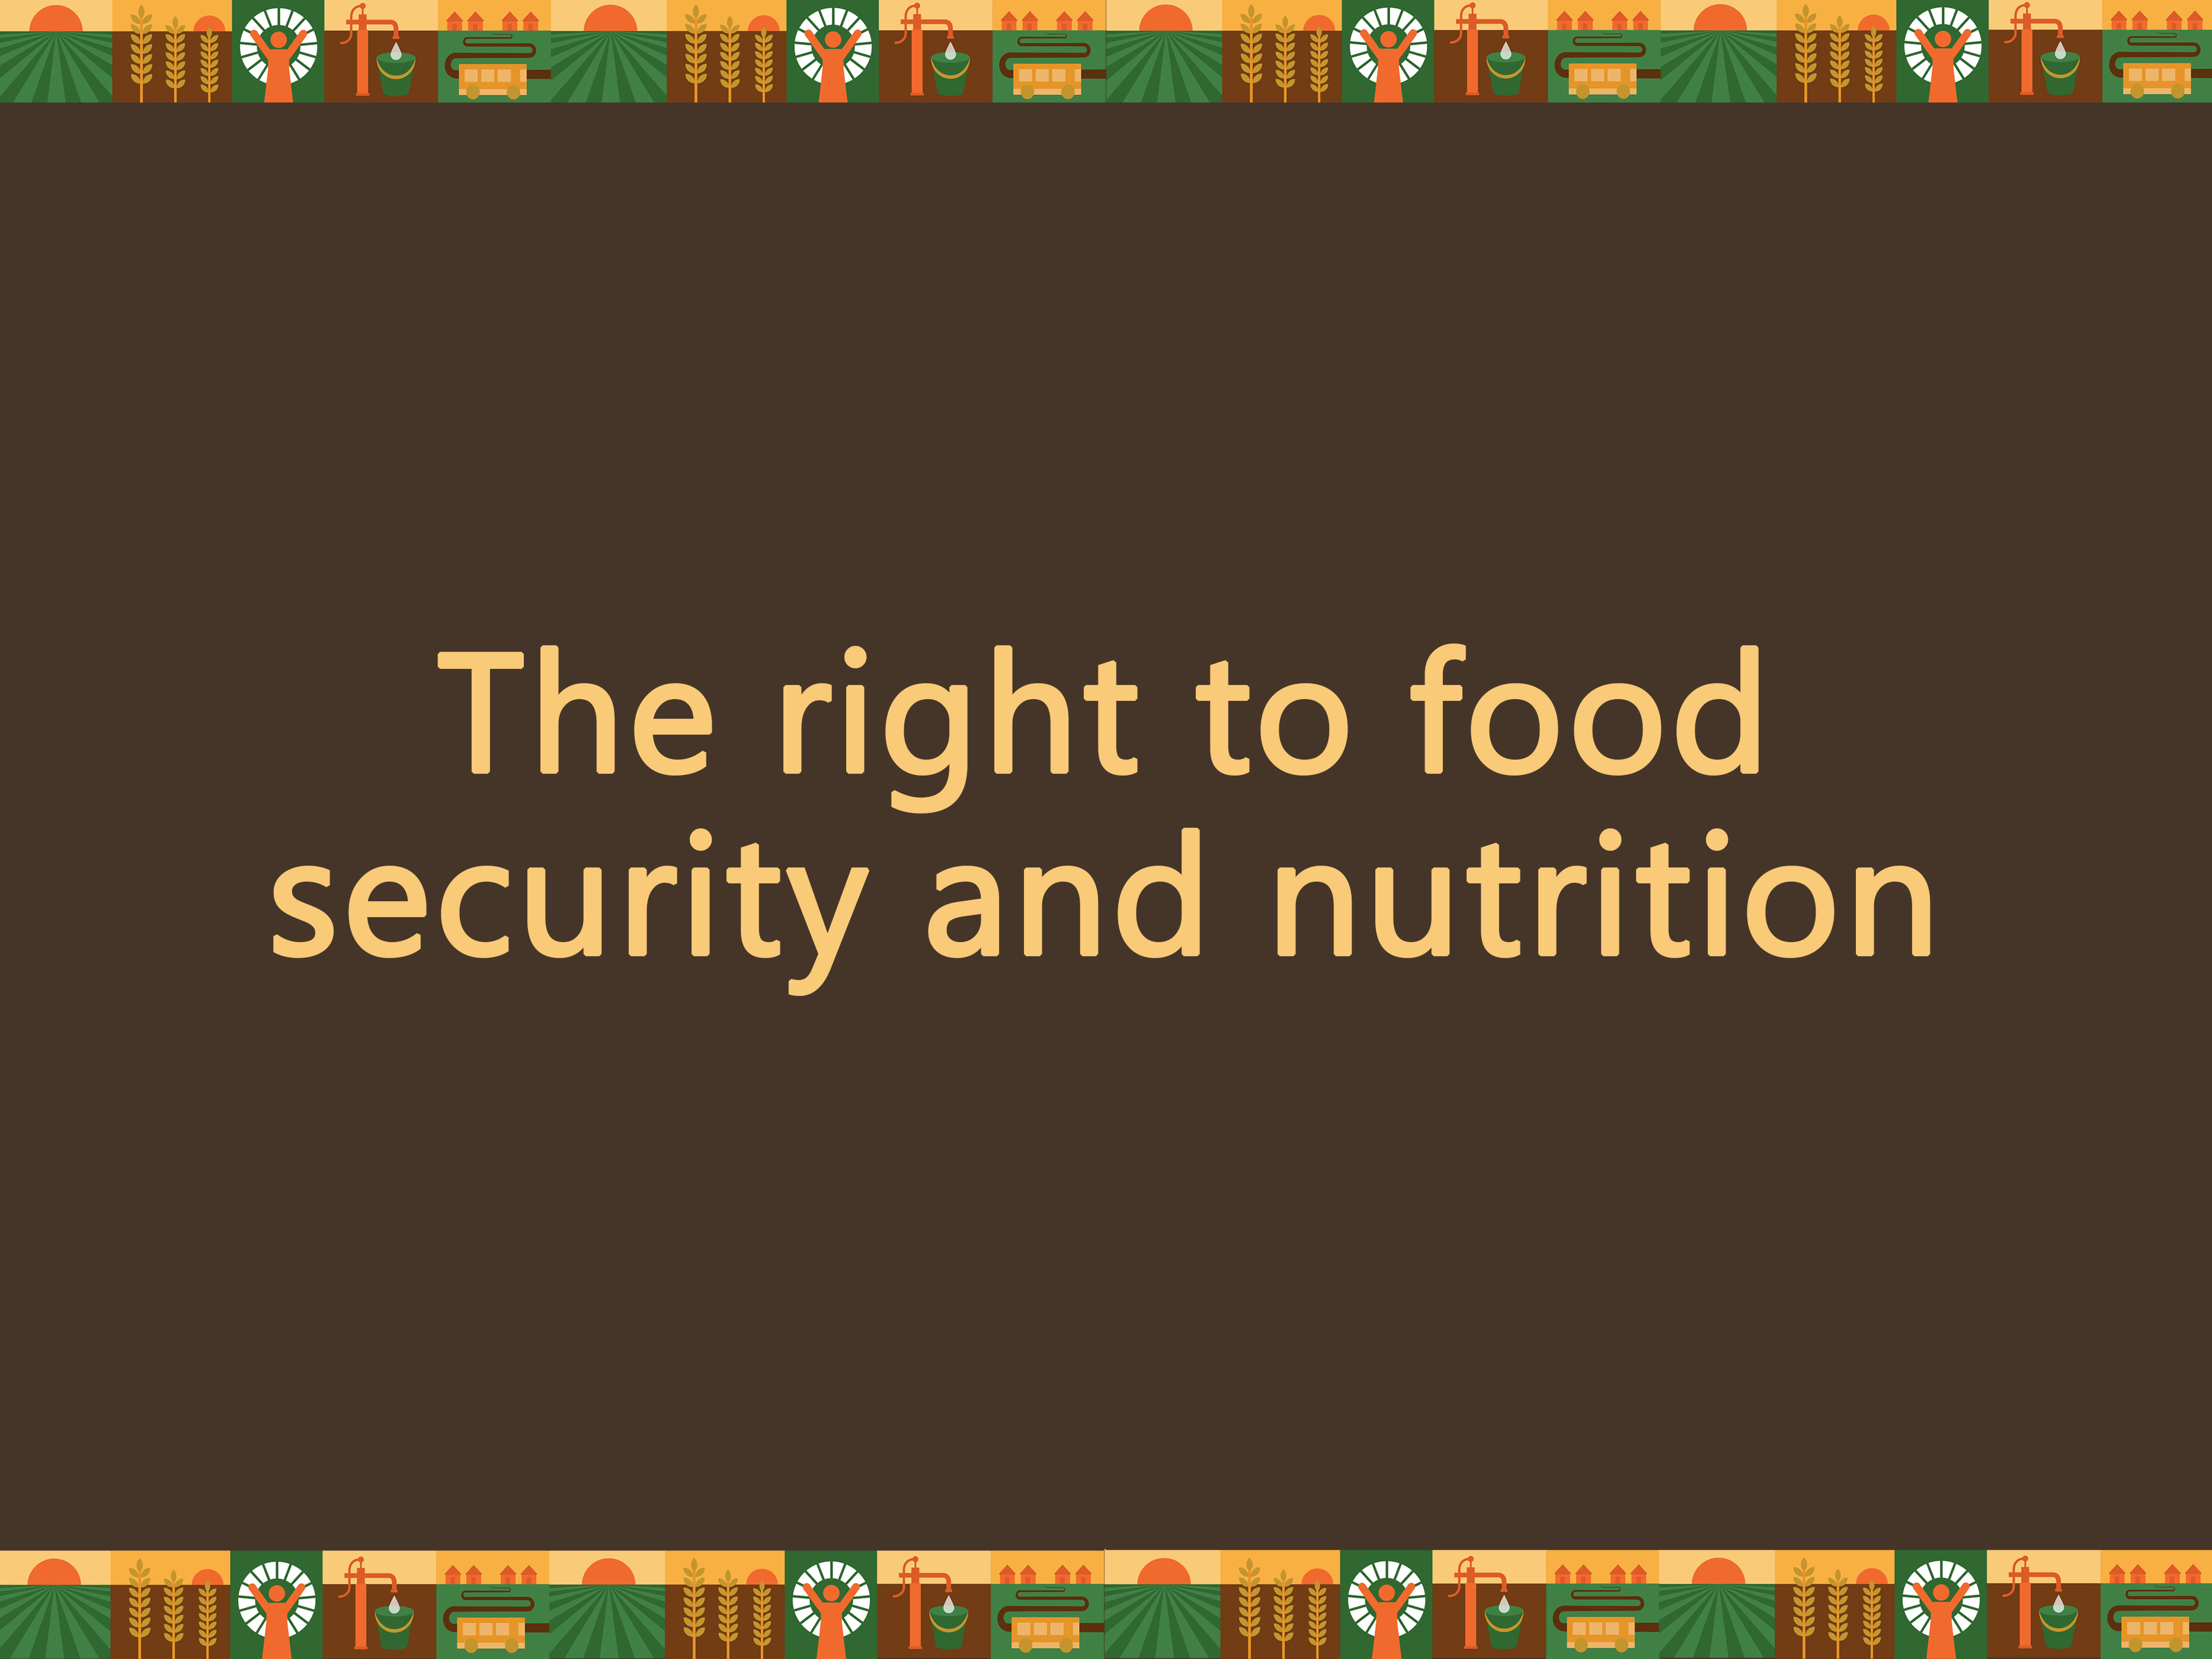 The right to food security and nutrition